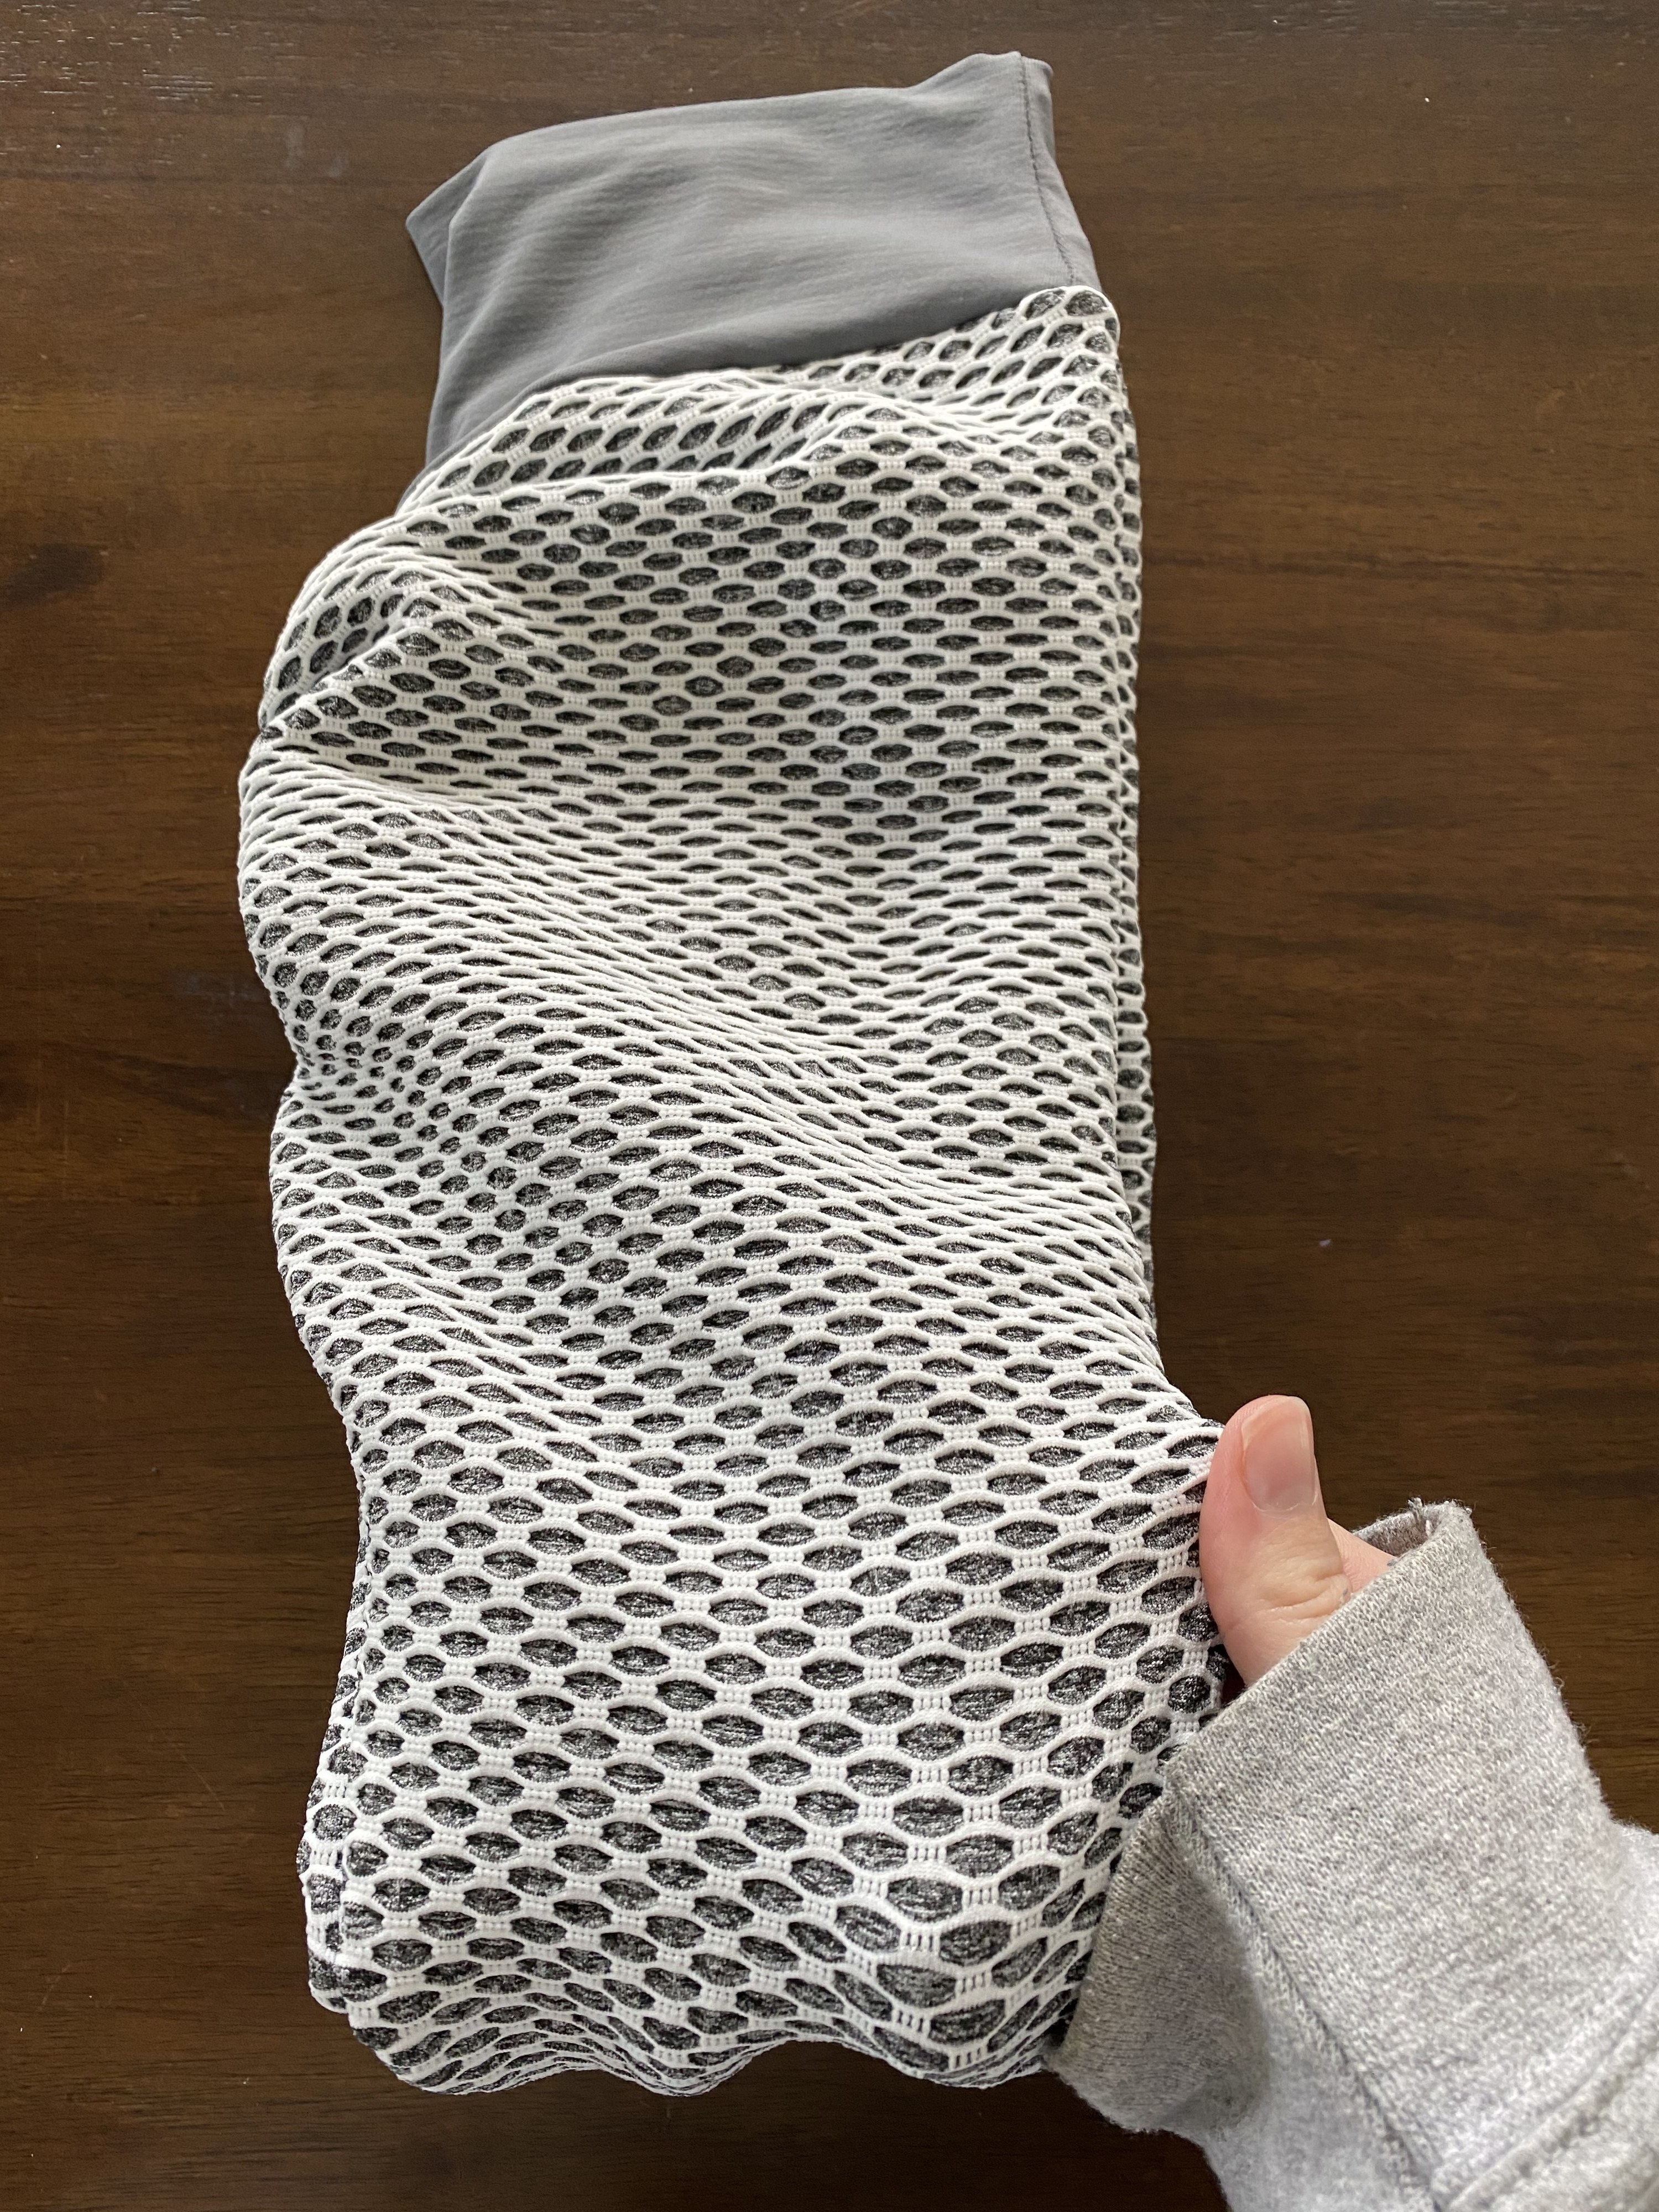 A close-up of the leggings, and the netted material